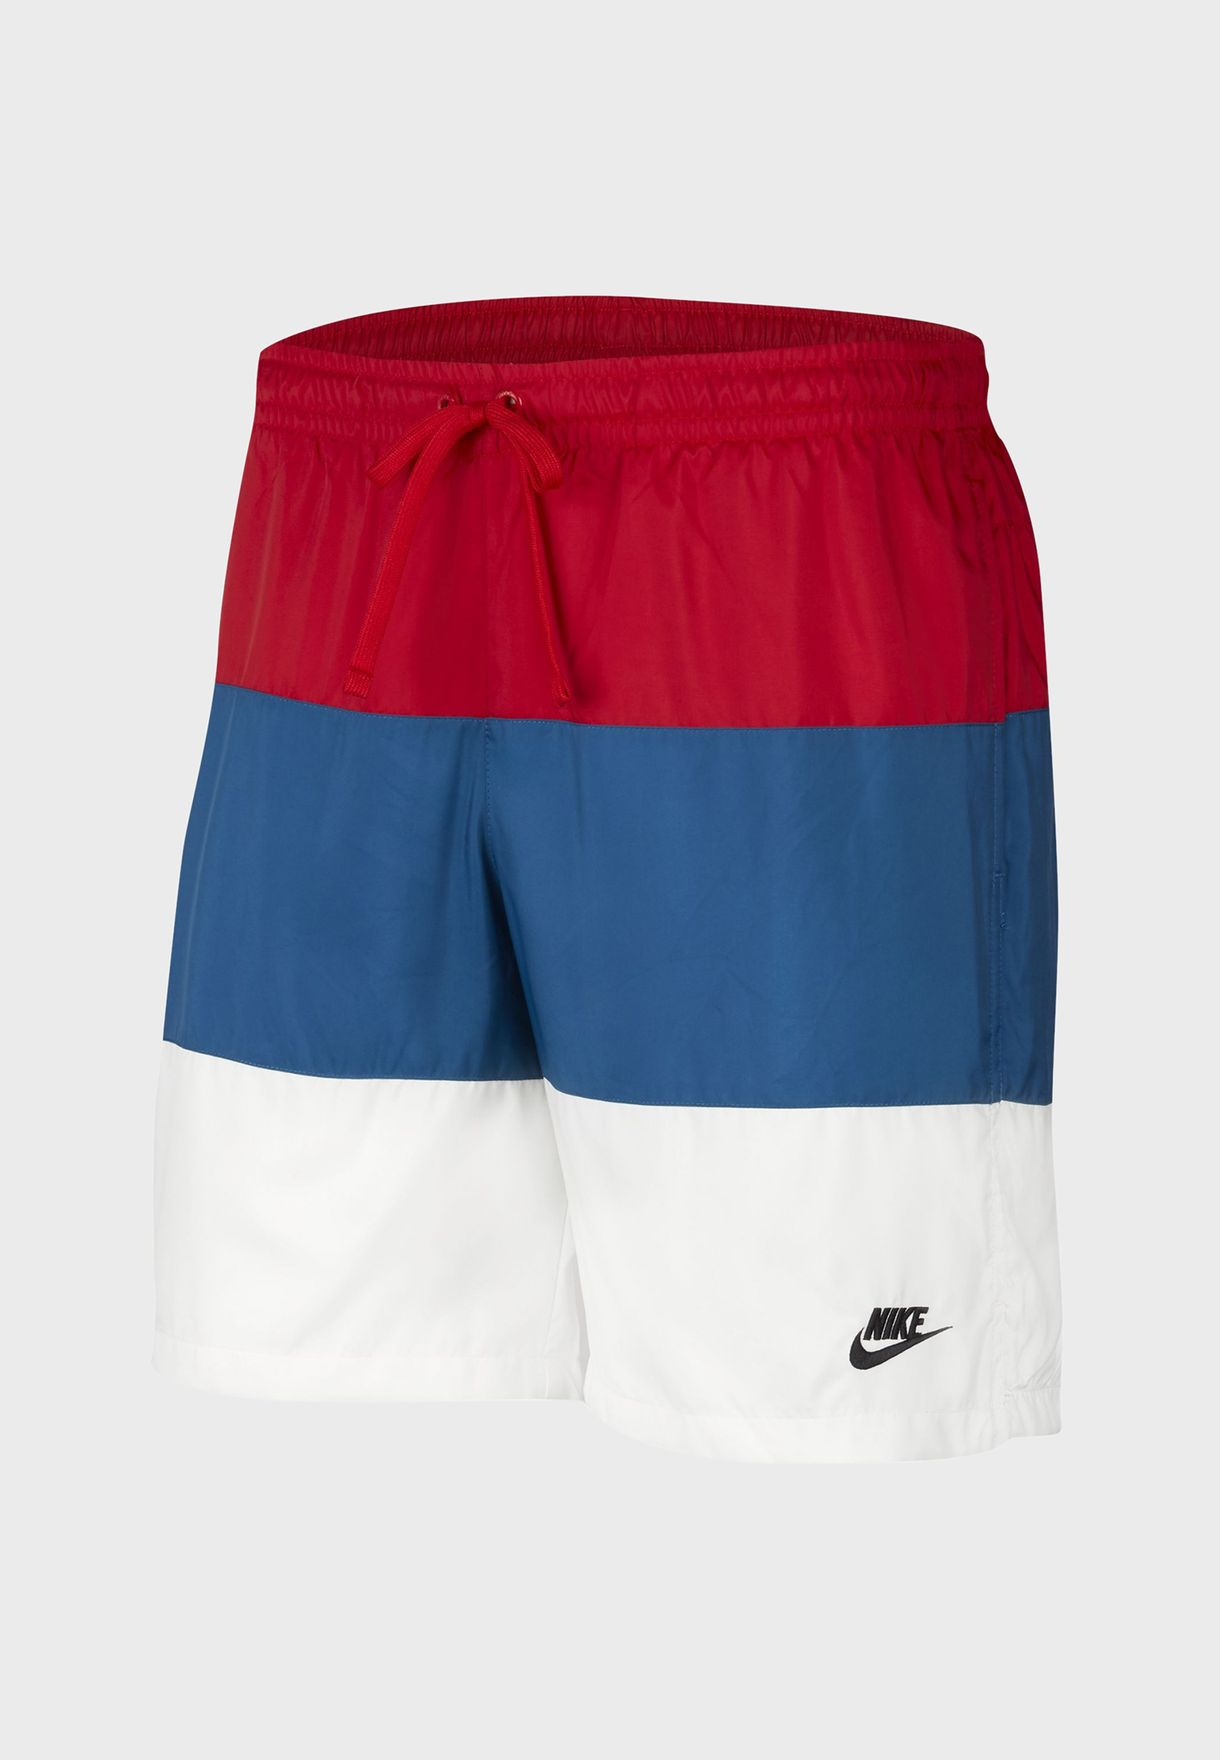 NSW Woven Shorts